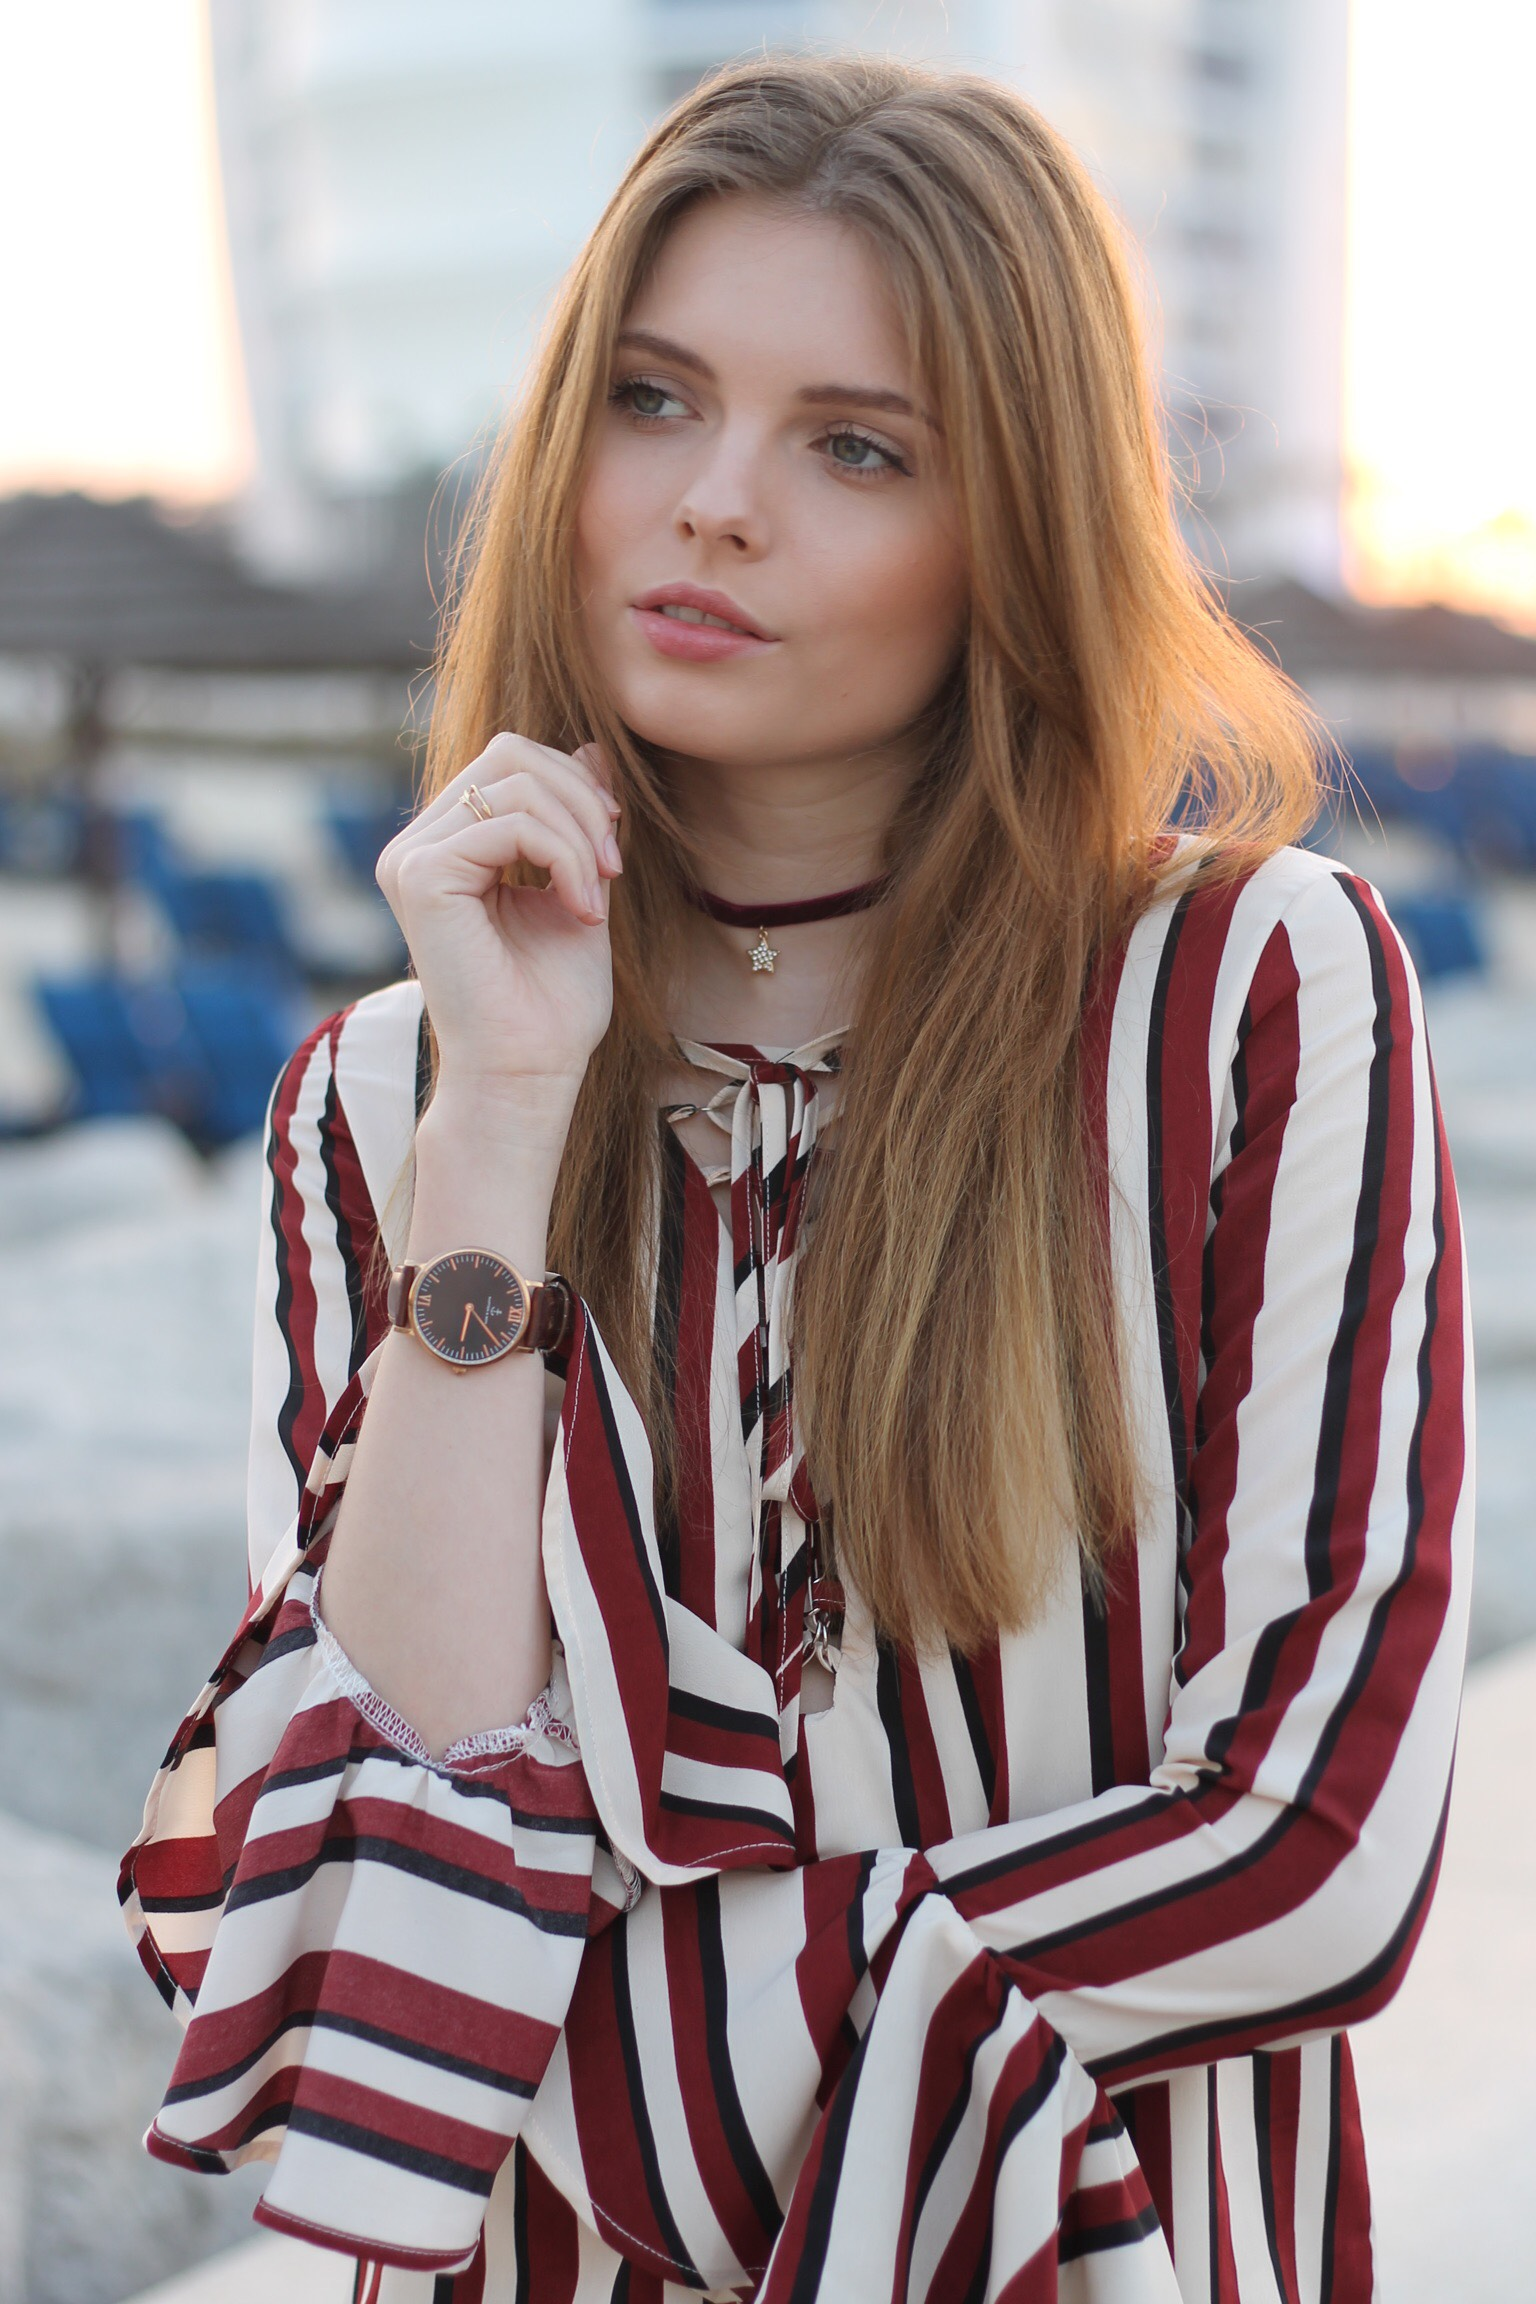 file21kopie - STRIPED BLOUSE OUTFIT IN DUBAI